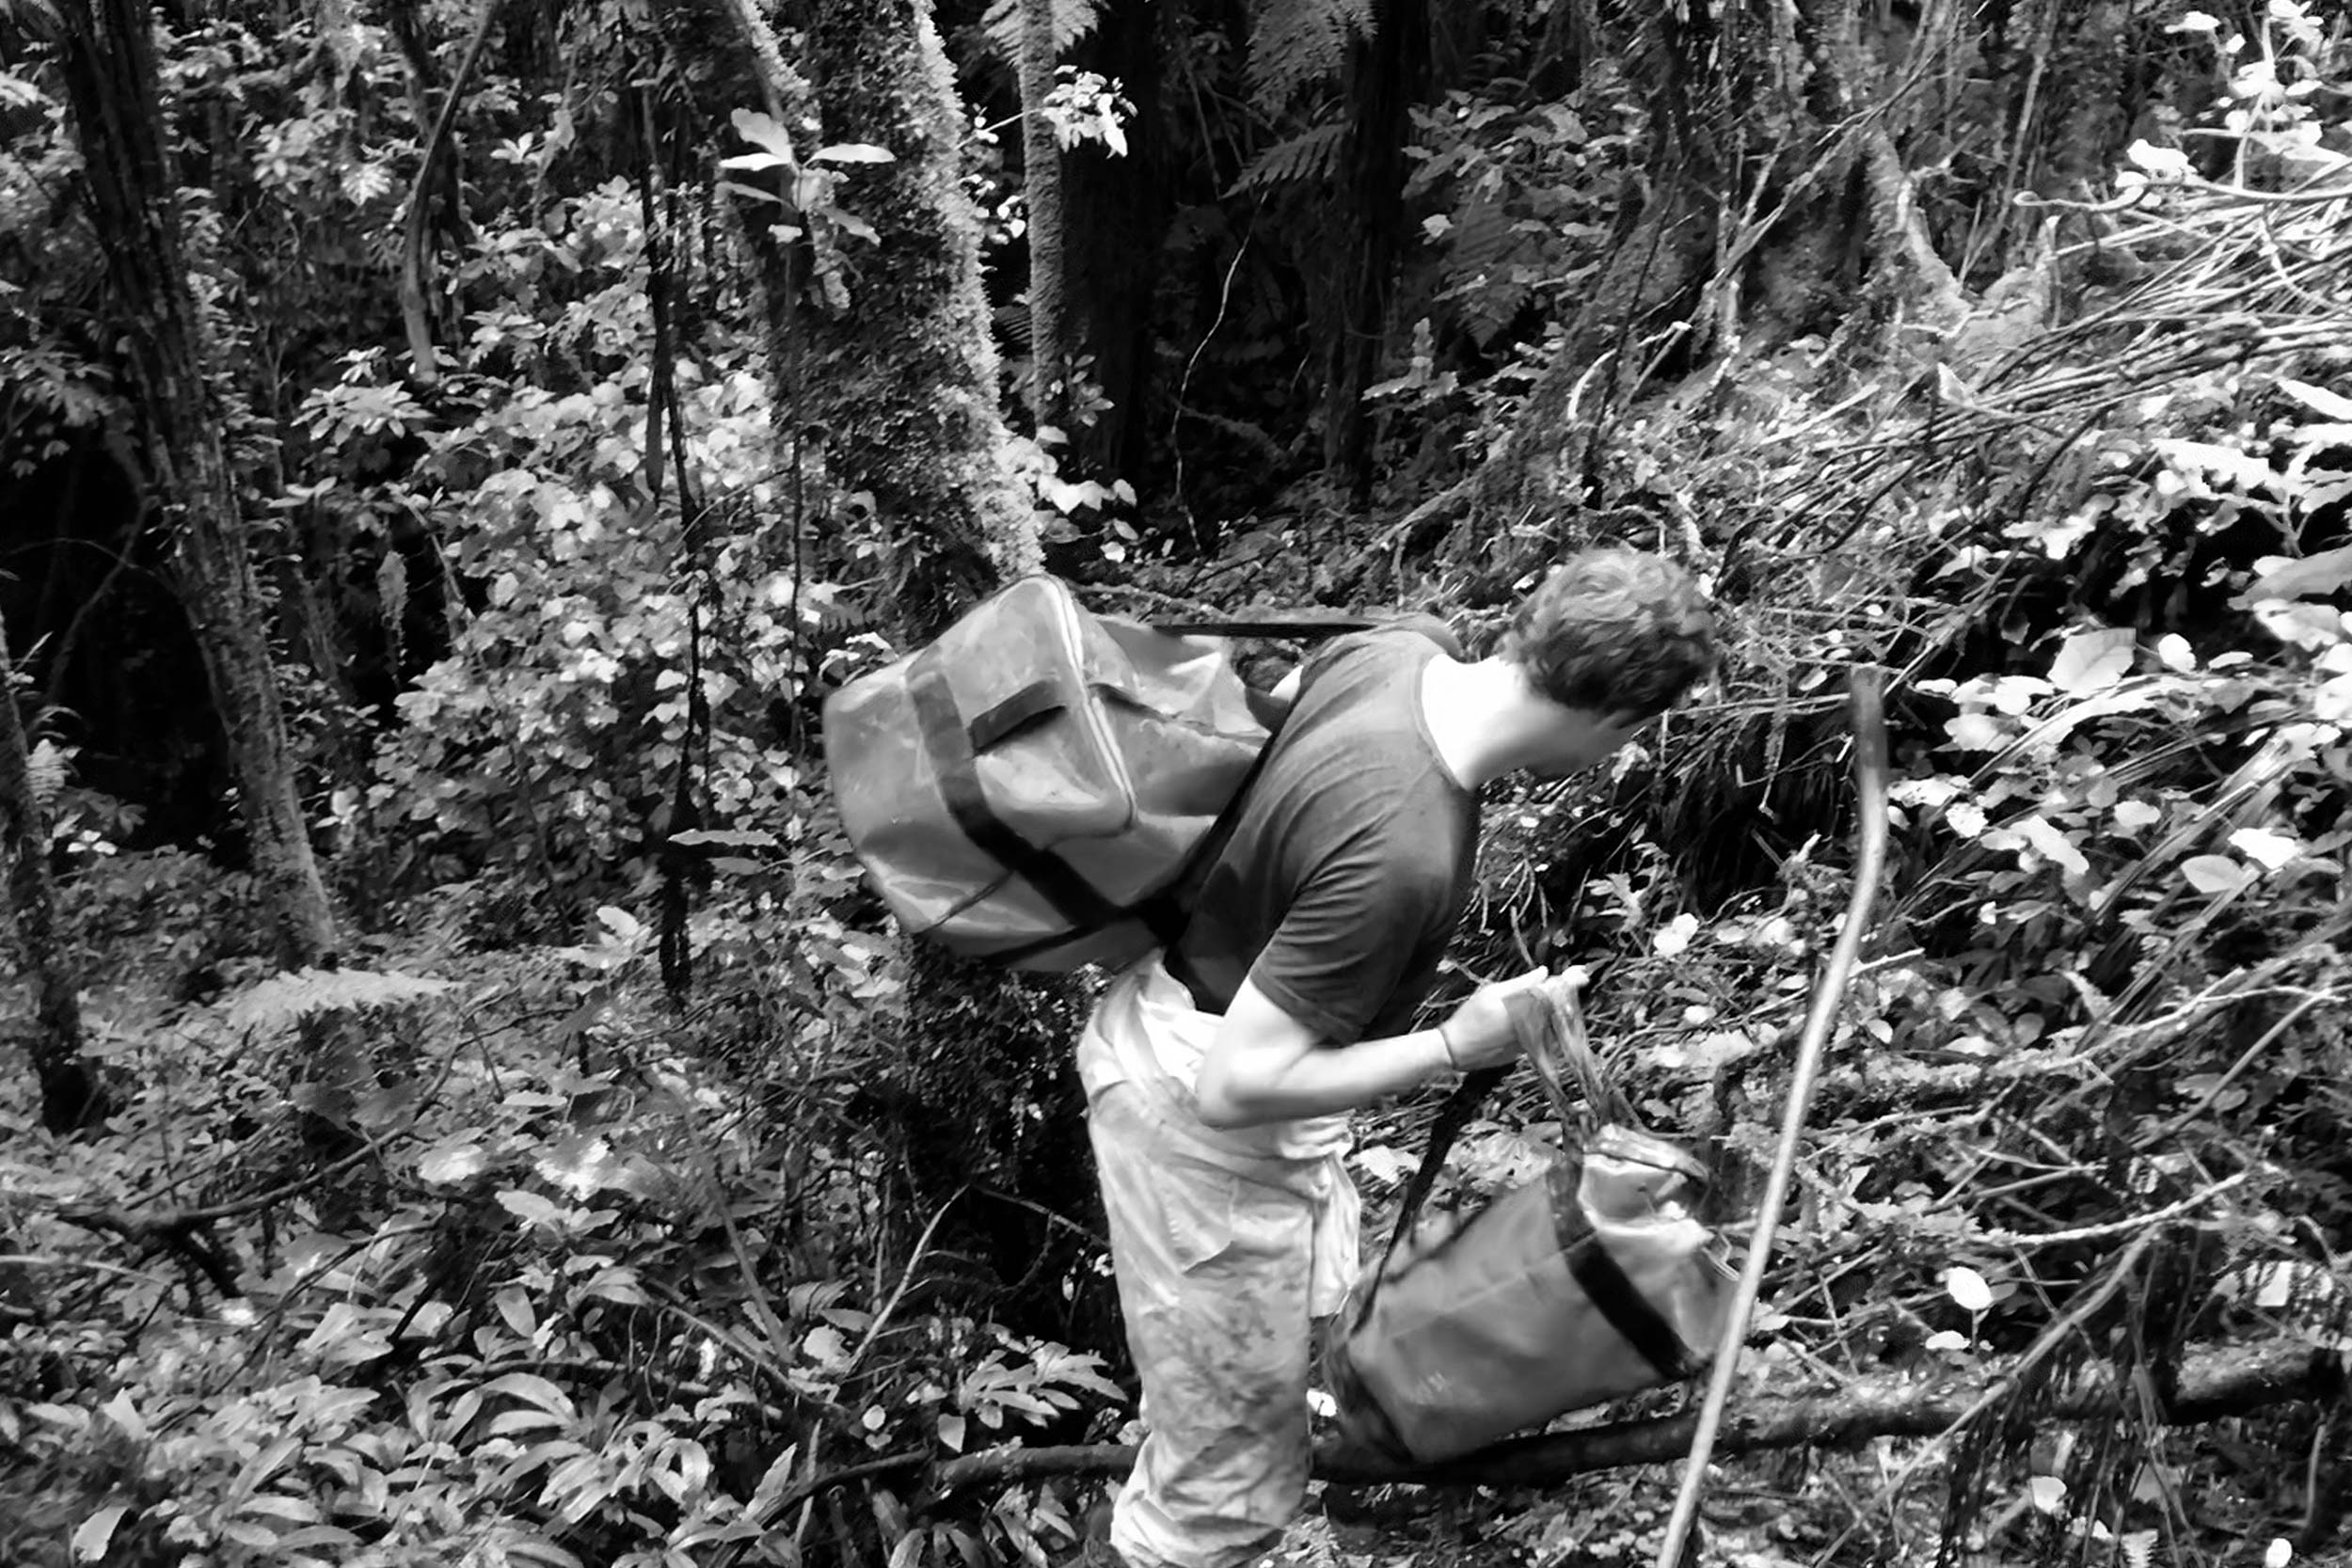 Field scientist carrying Syp autosampler device through forest in carry bags.